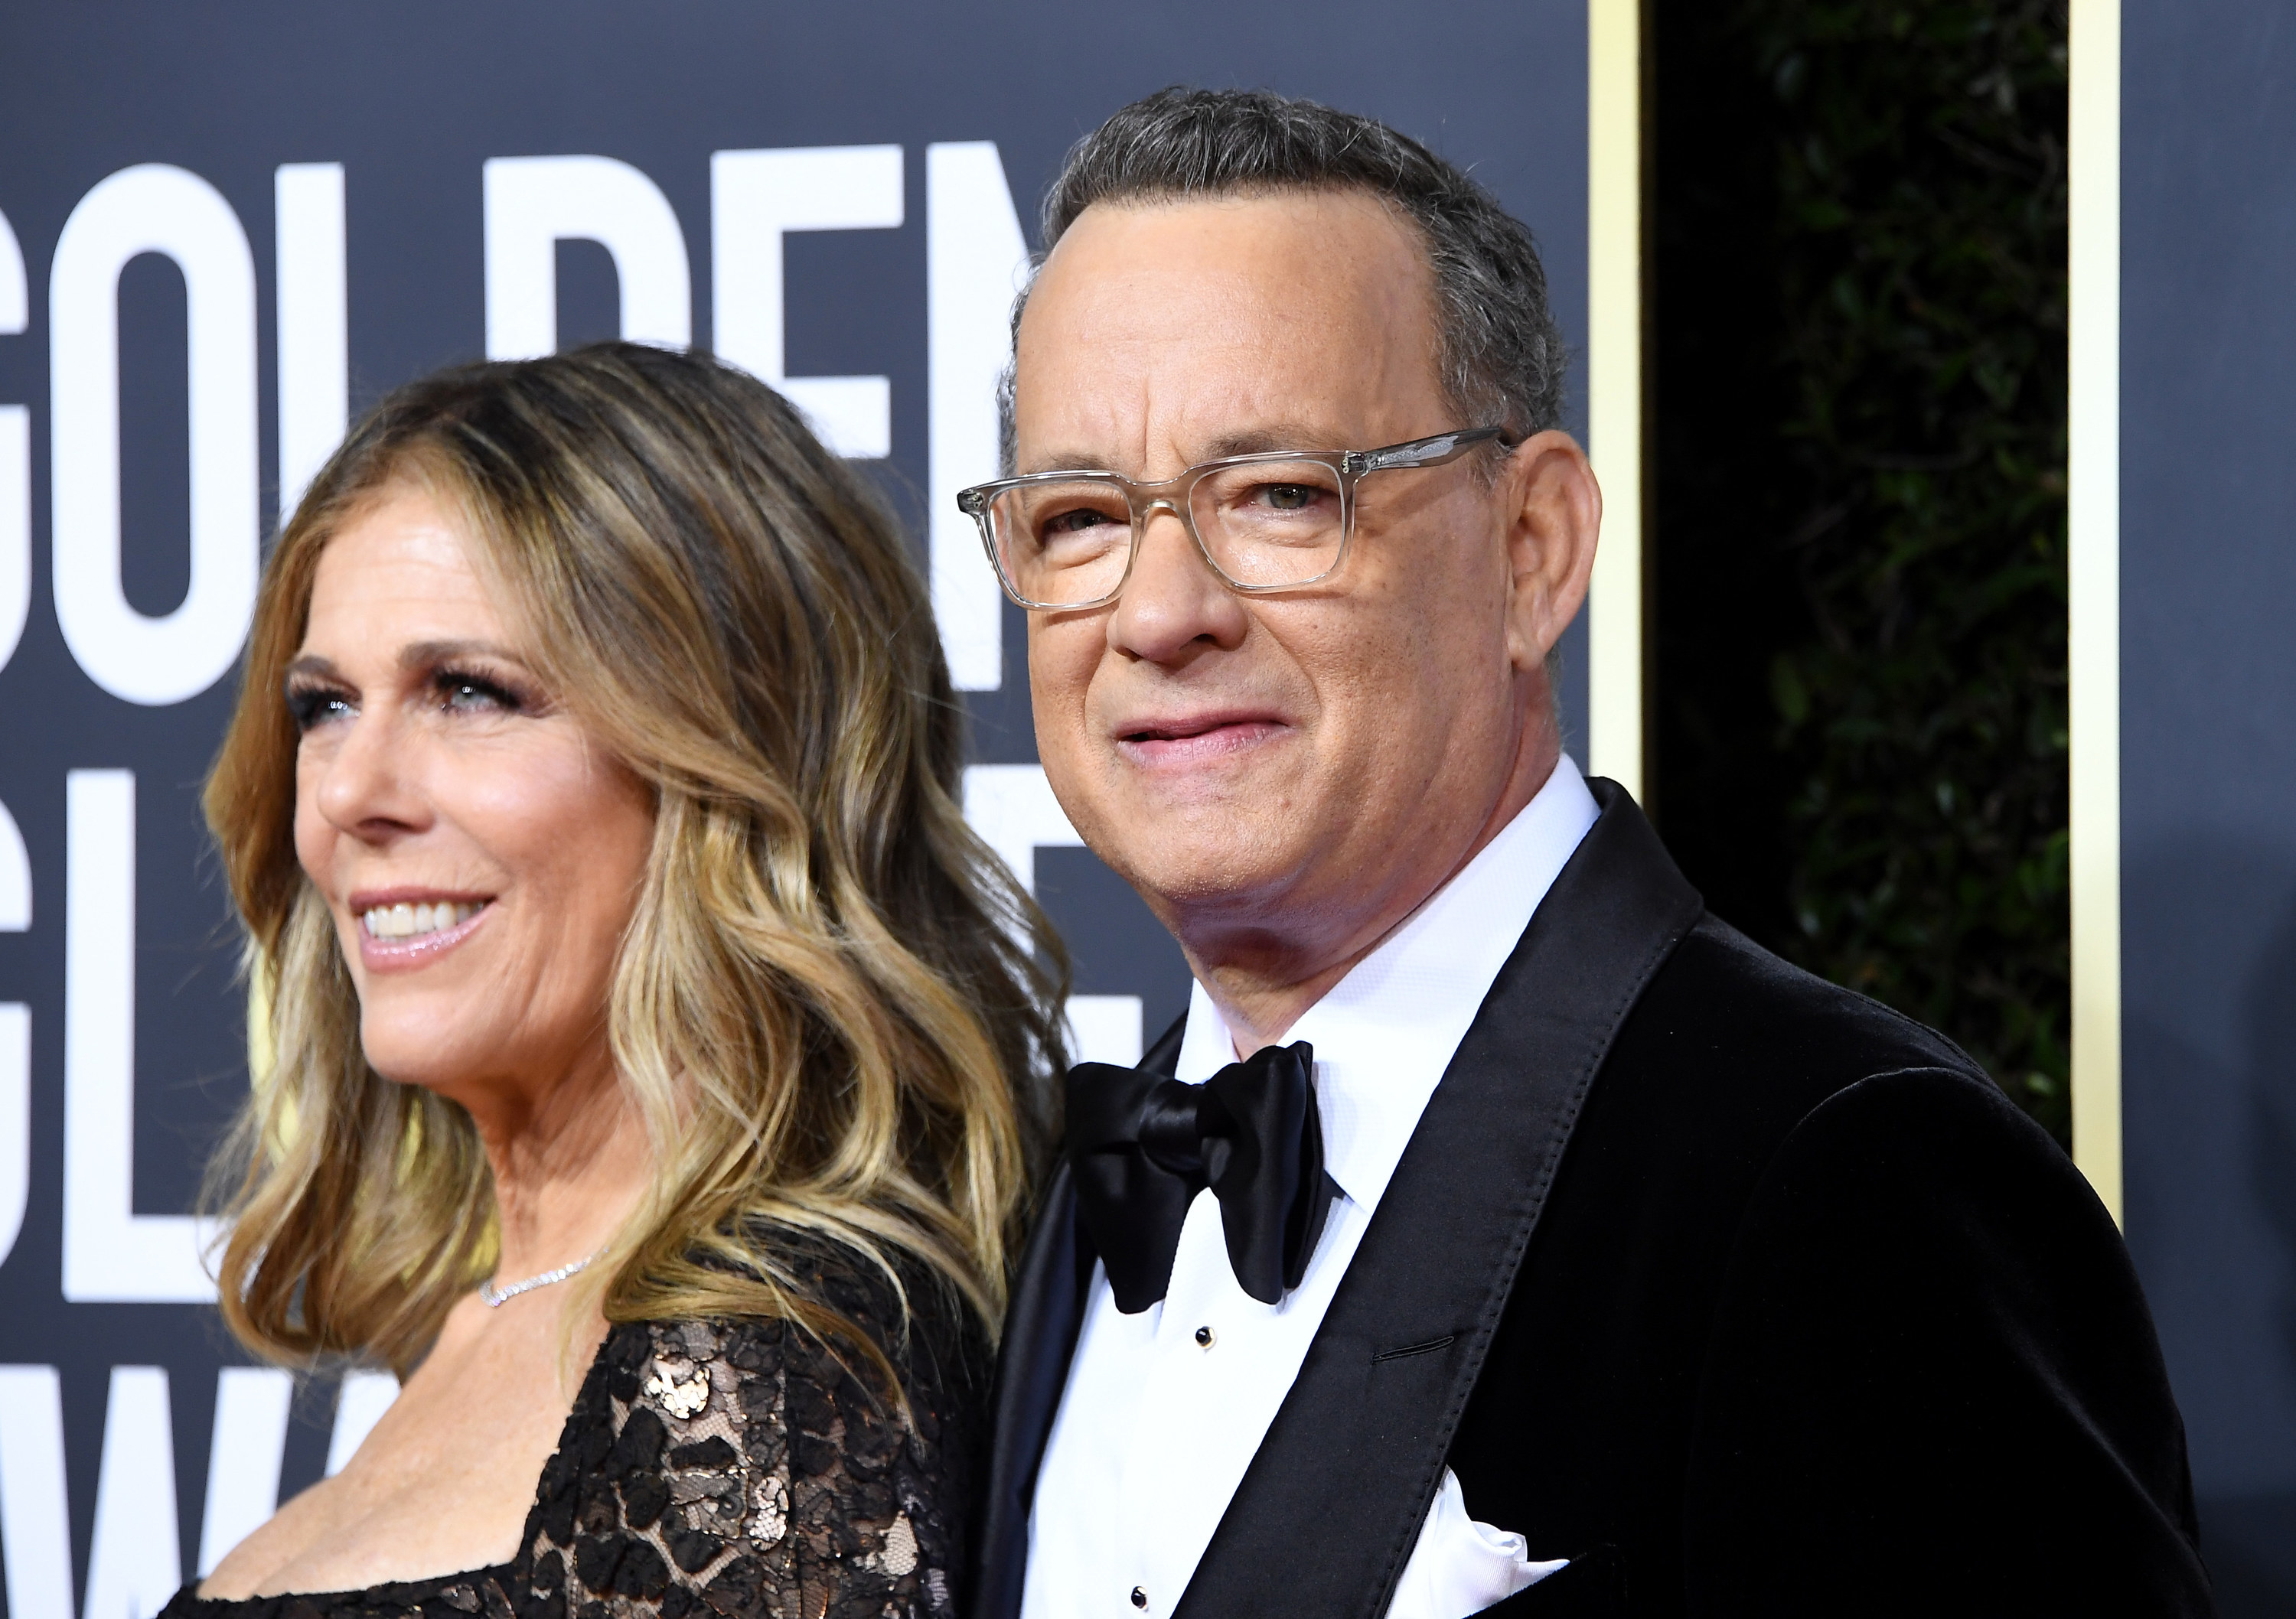 Rita Wilson and Tom Hanks arrives at the 77th Annual Golden Globe Awards attends the 77th Annual Golden Globe Awards at The Beverly Hilton Hotel on January 05, 2020 in Beverly Hills, California